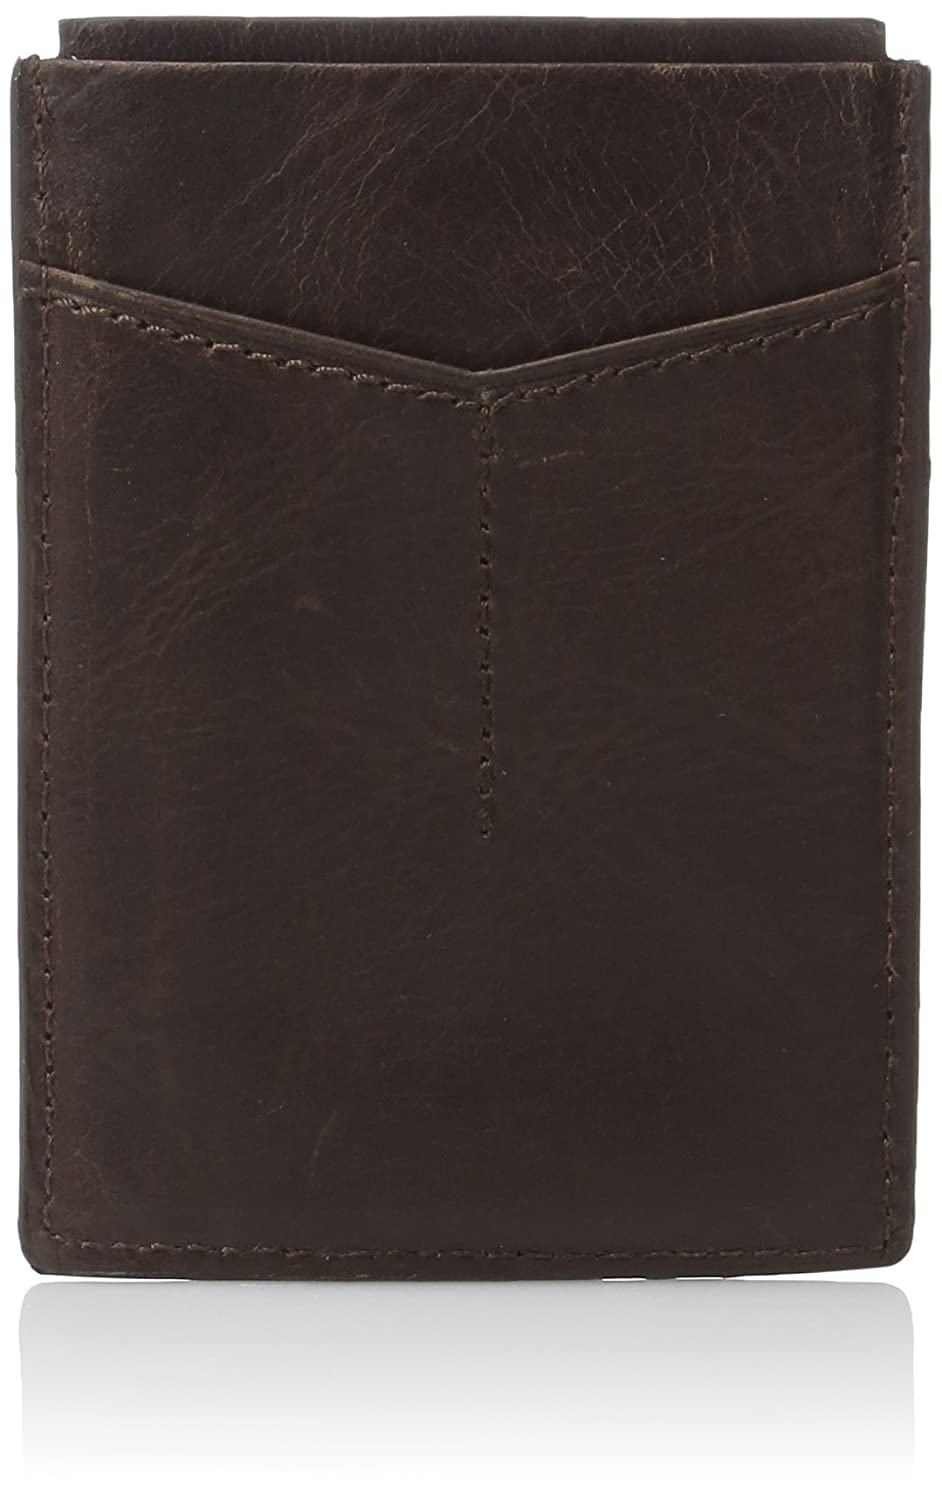 Fossil mens standard Rfid Card Case Wallet Dark Brown One Size Fossil Men' s Accessories ML3812201